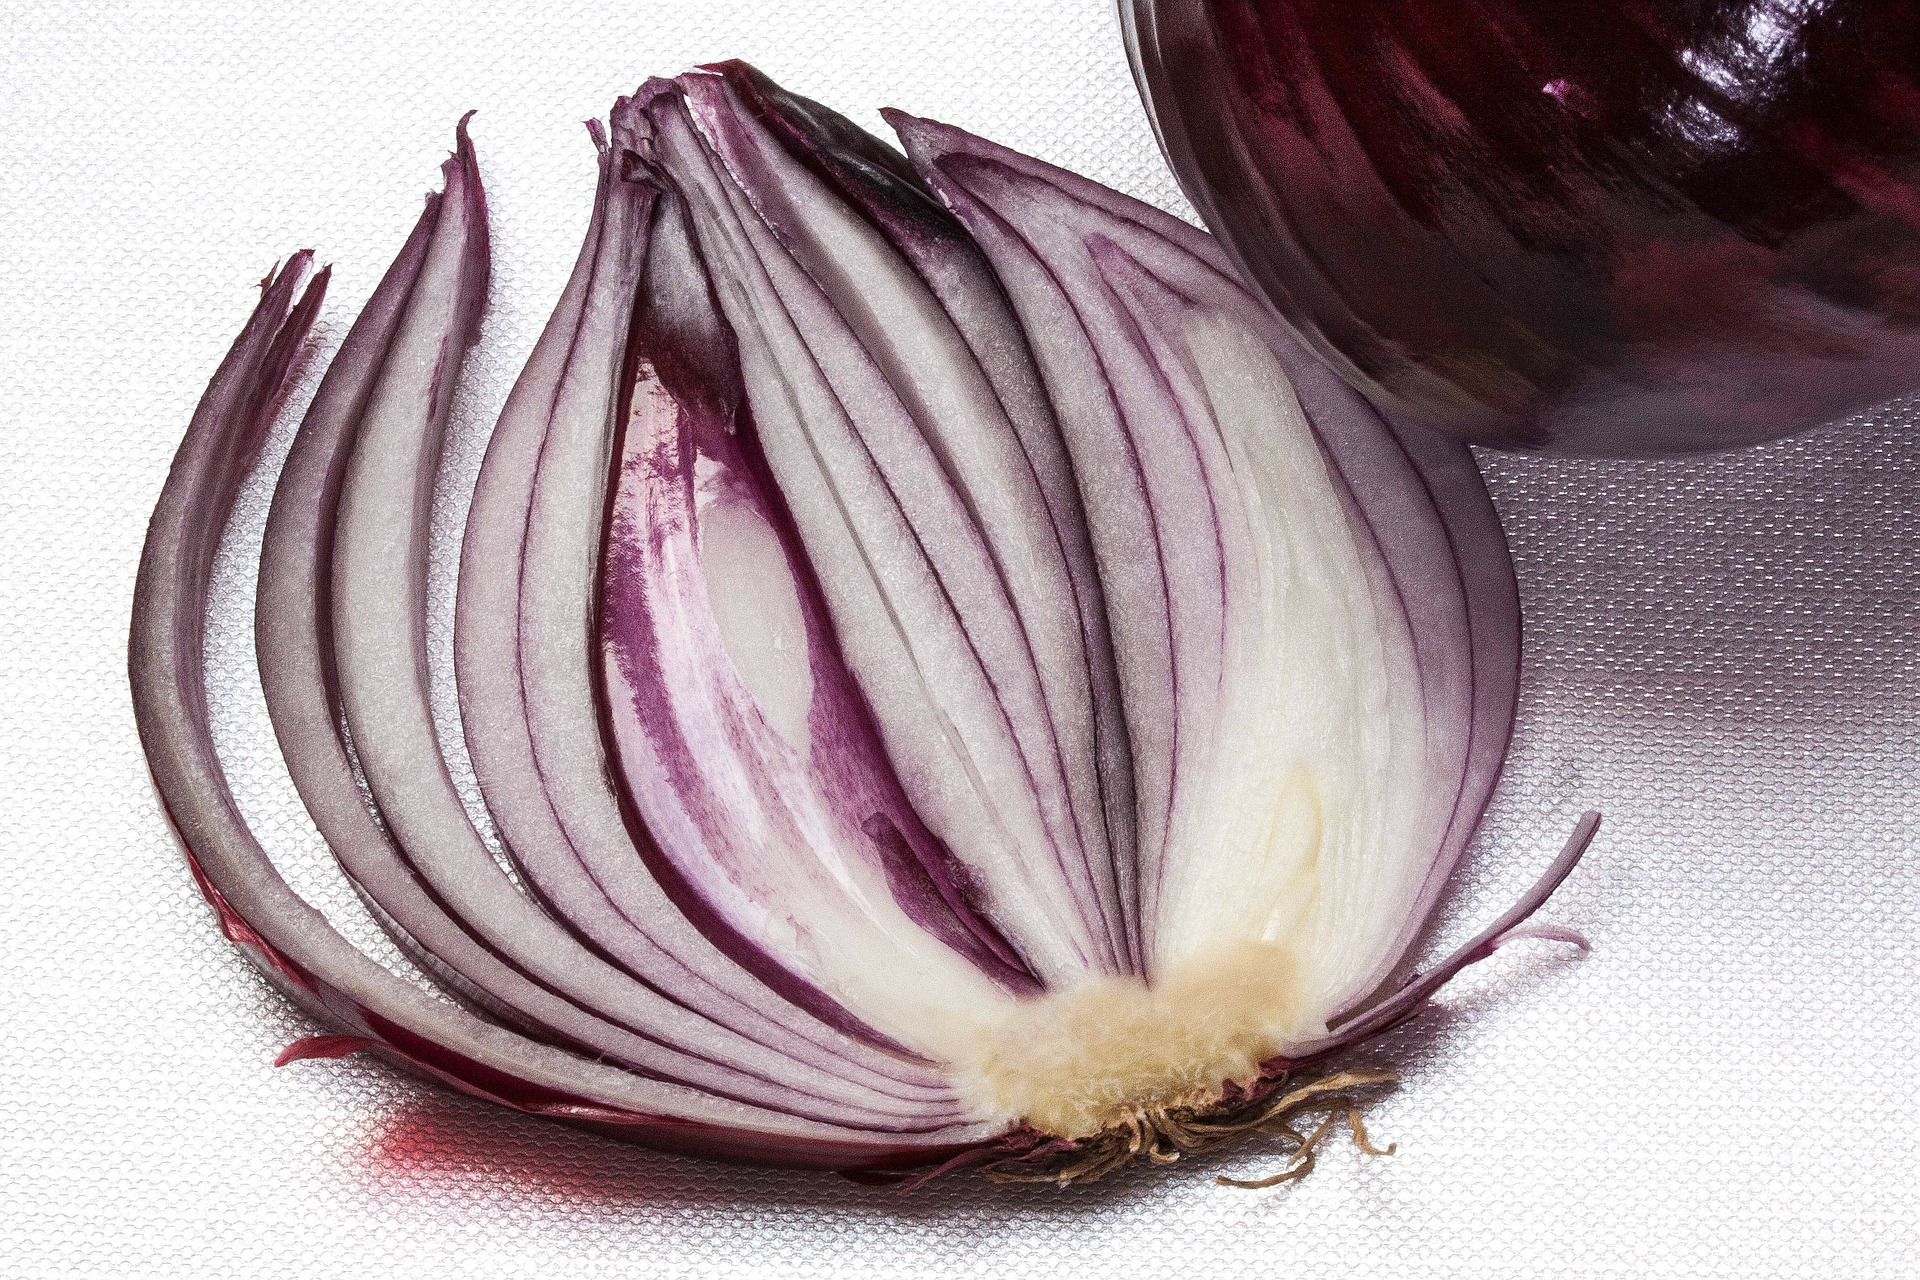 layers of an onion